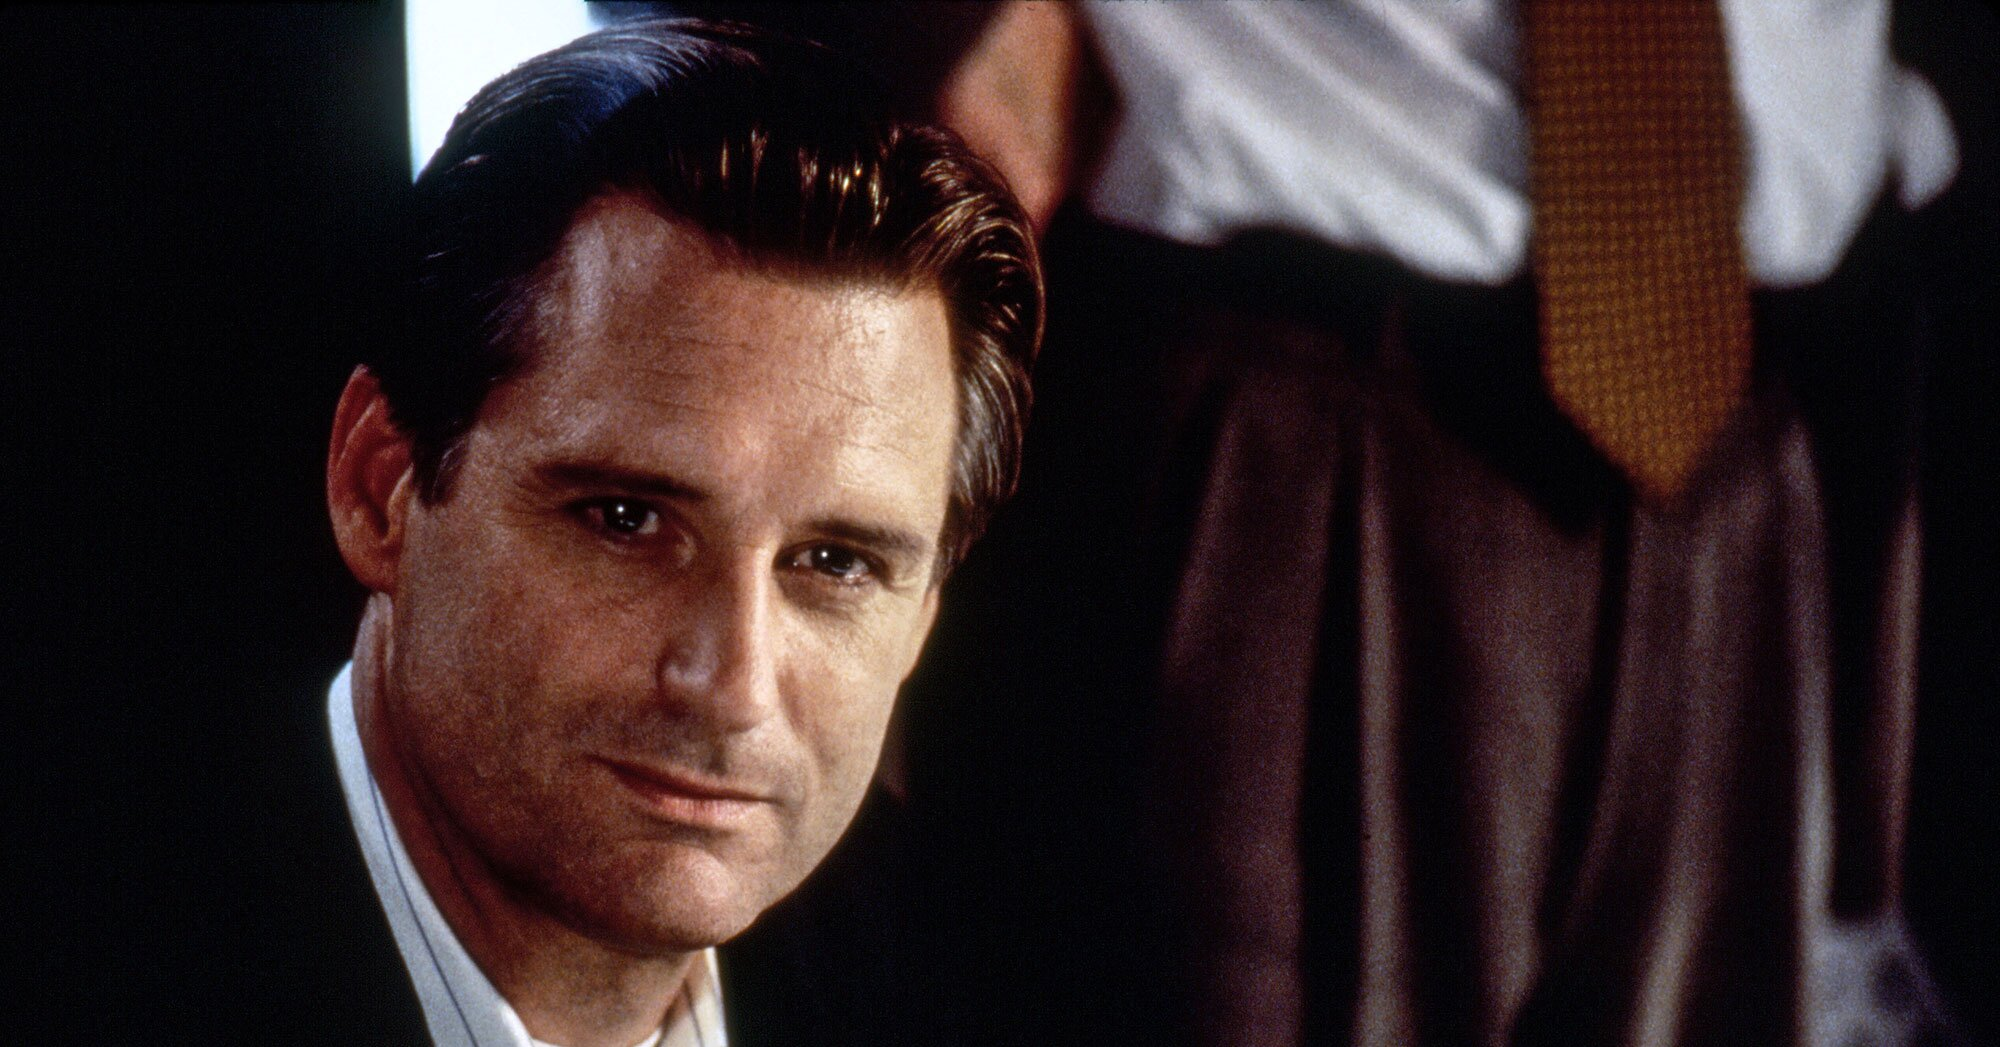 Bill Pullman promotes the use of 'freedom masks' with <em>Independence Day</em> throwback